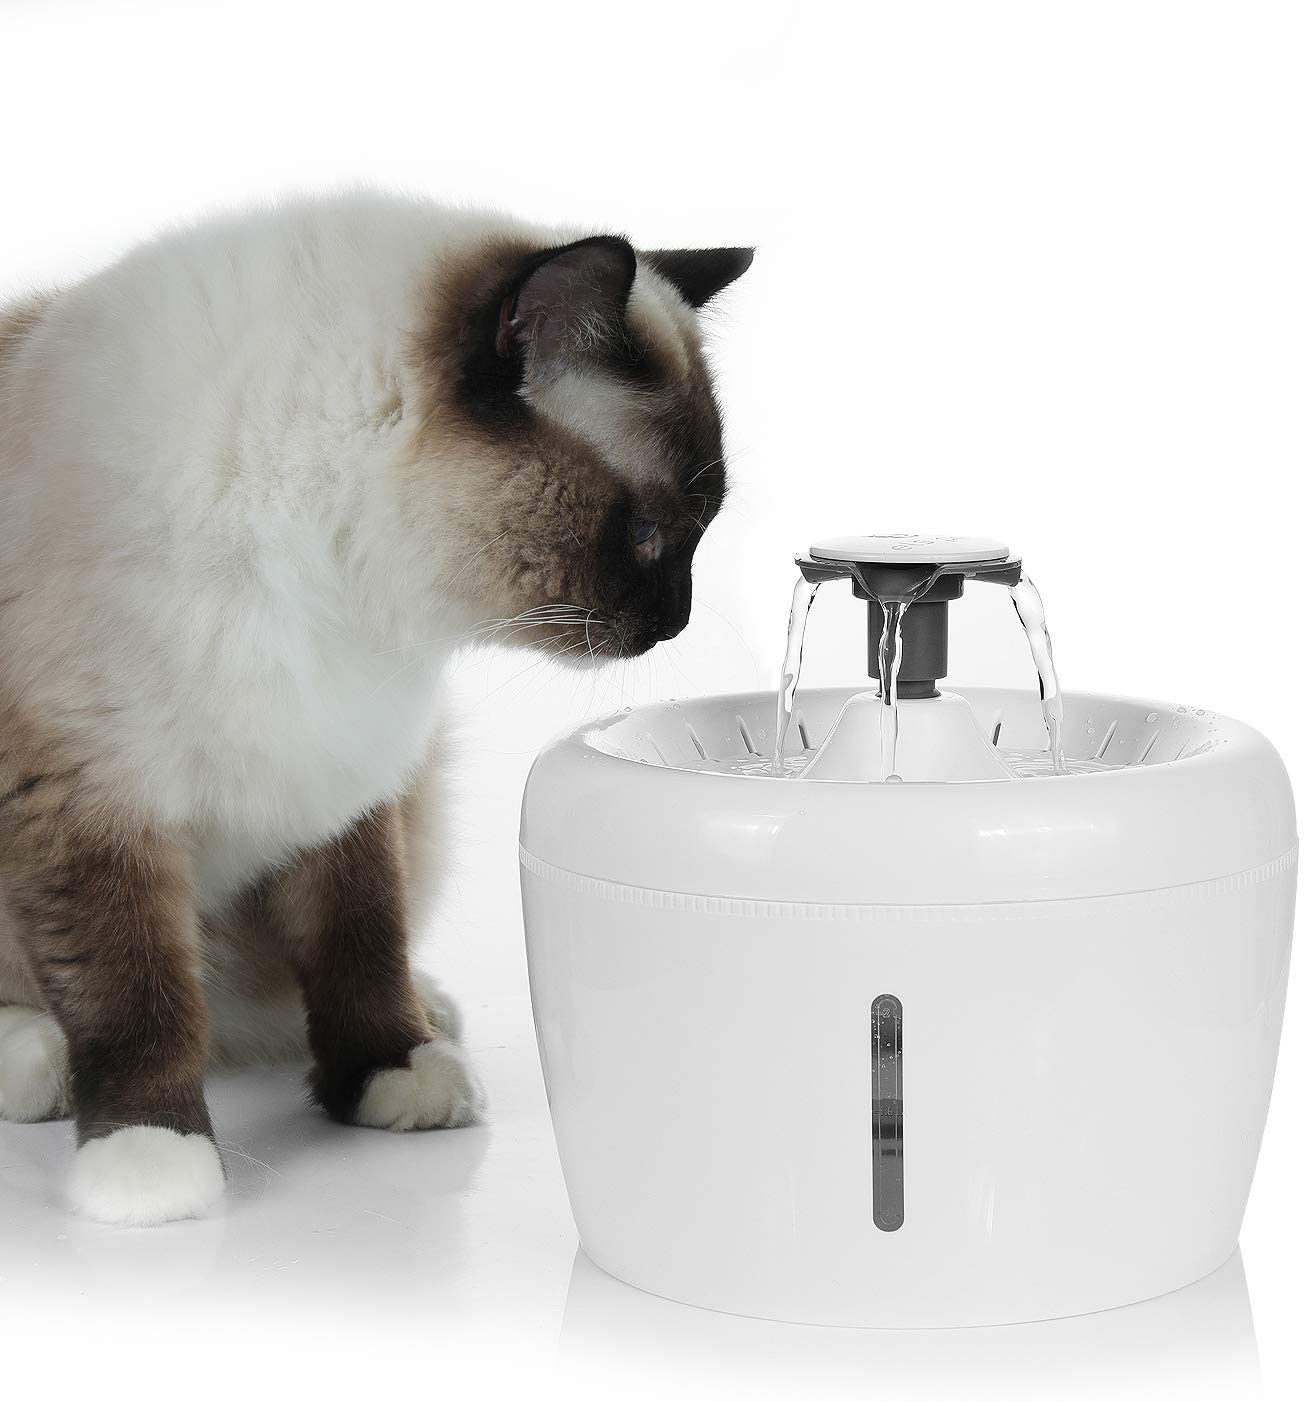 Large Cat Water Fountain, 84oz/2.5L LED Light Pet Drinking Water Dispenser, Dog Automatic Water Fountain, Quiet Electric Water Bowl 3 Flow Settings, with Water Level Window